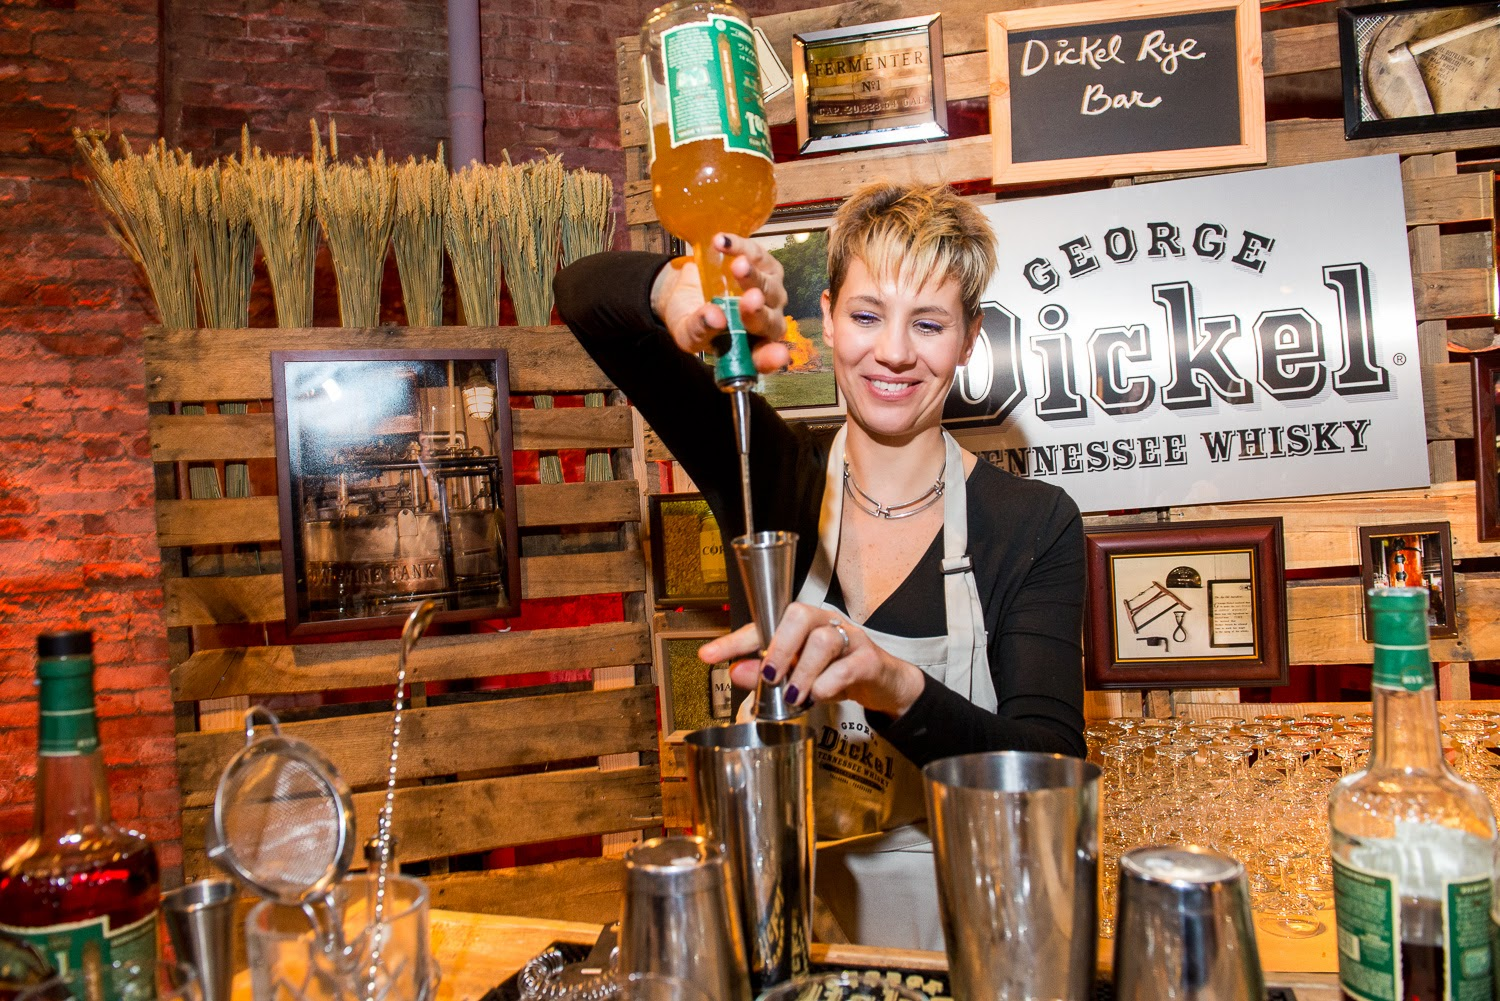 pouring george dickel whiskey